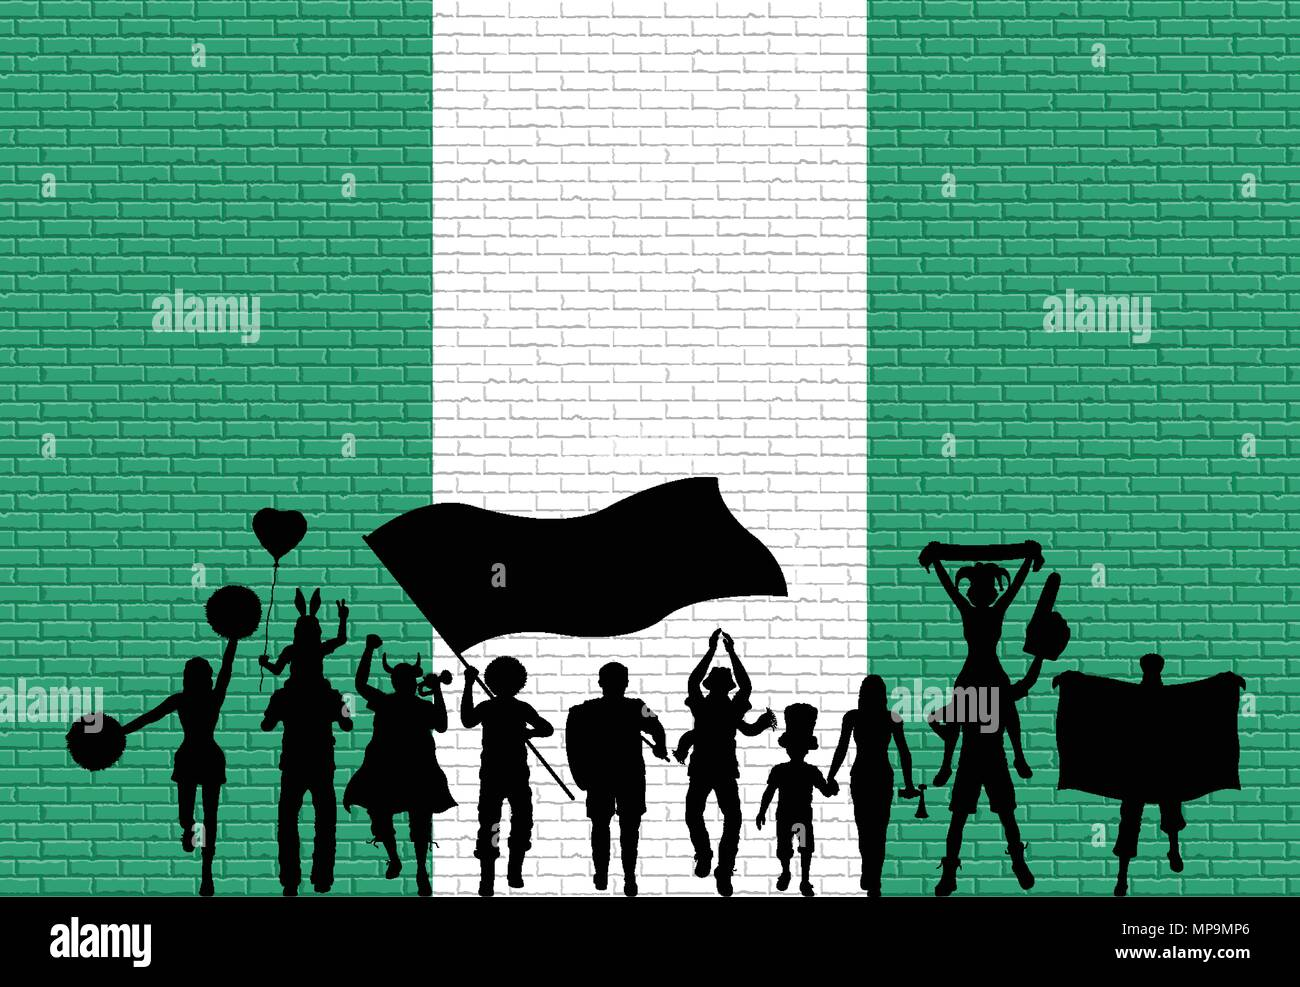 Nigerian supporter silhouette in front of brick wall with Nigeria flag. All the objects, silhouettes and the brick wall are in different layers. - Stock Vector